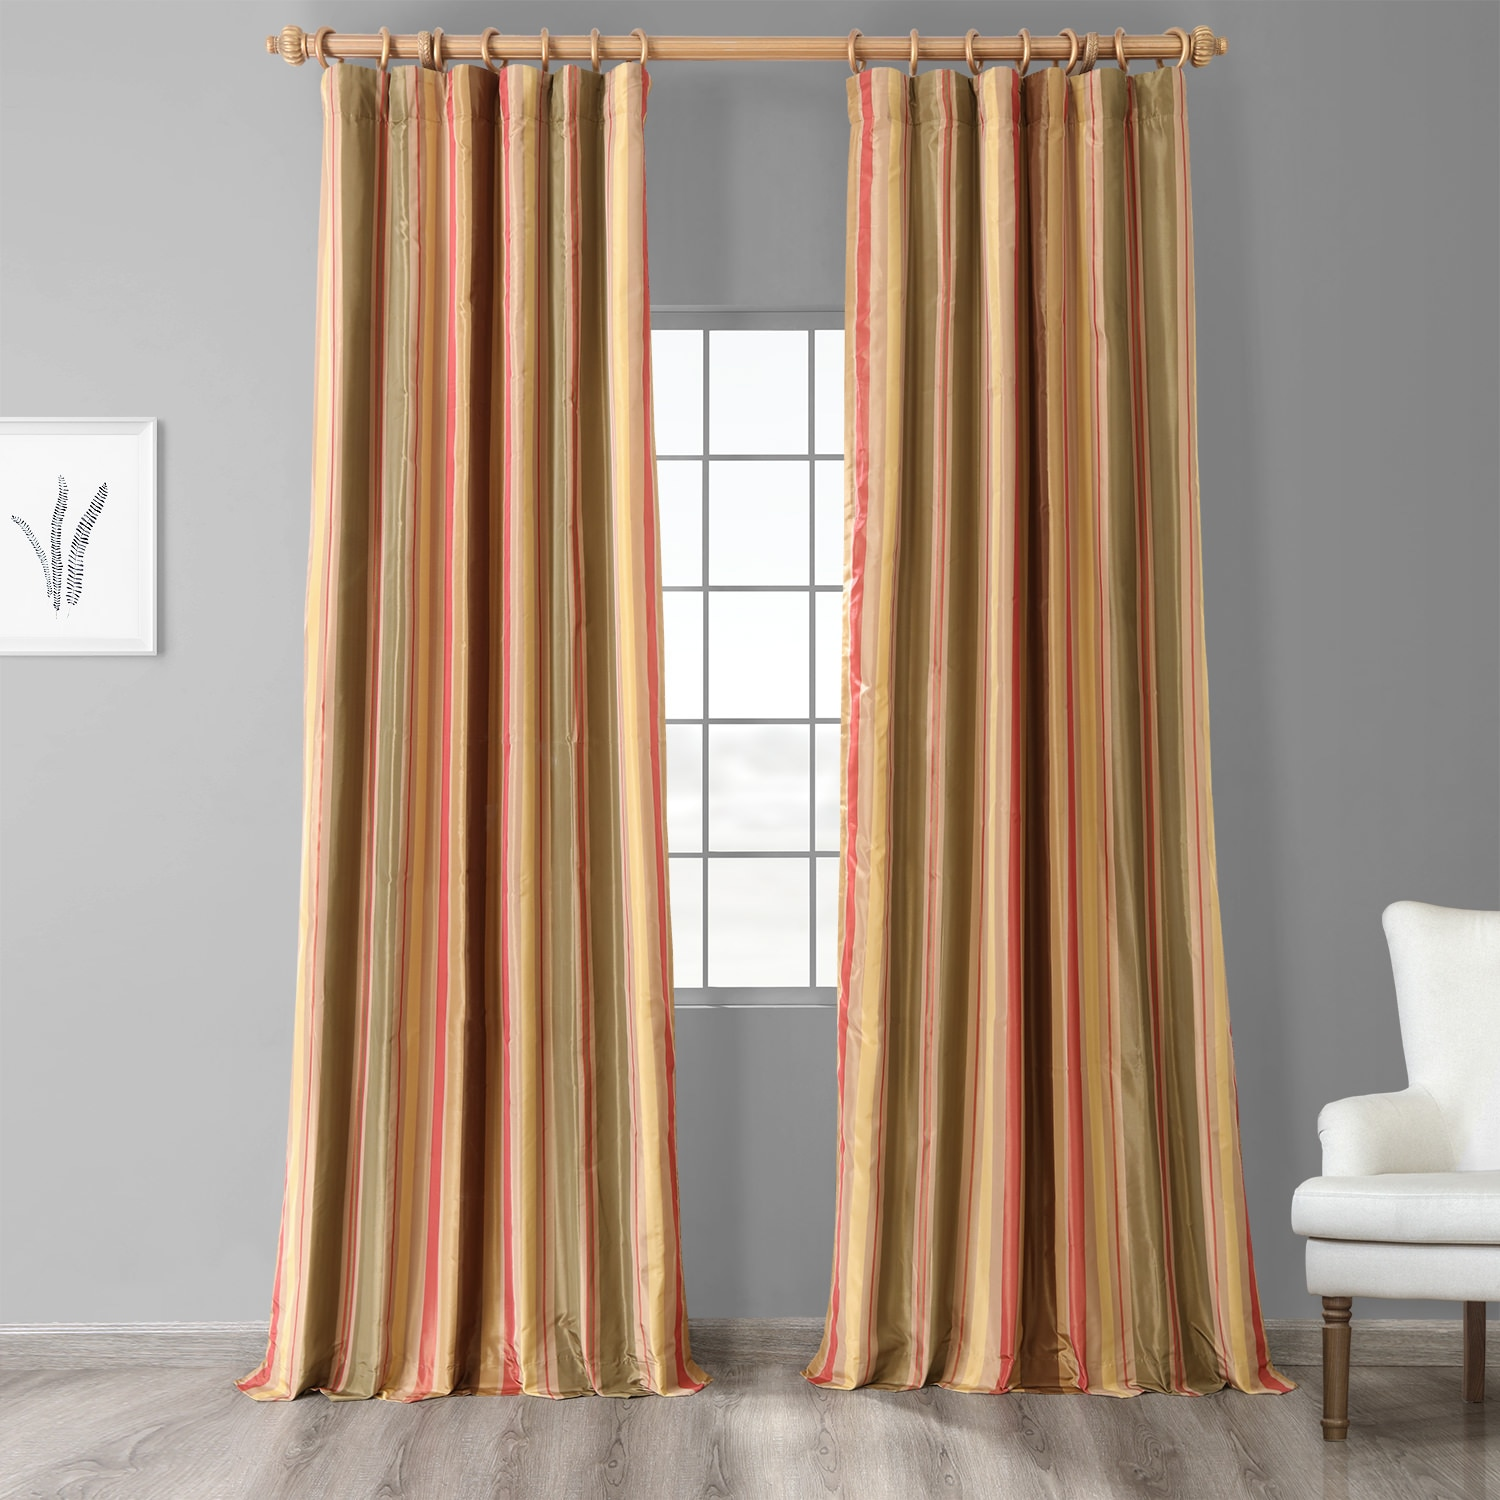 Mirage Striped Faux Silk Curtains Half Price Drapes